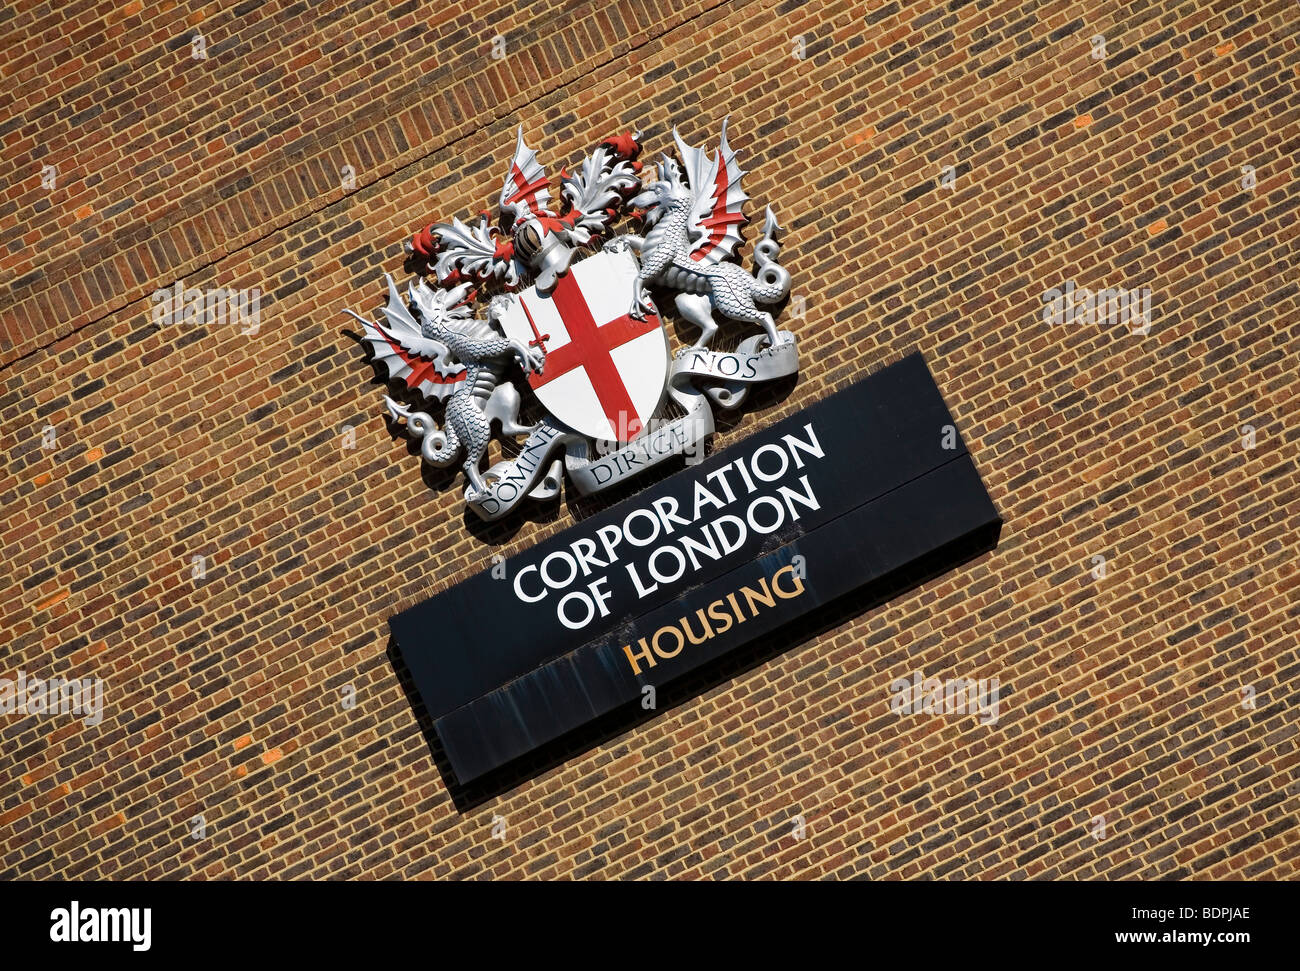 Corporation of London housing sign - Stock Image